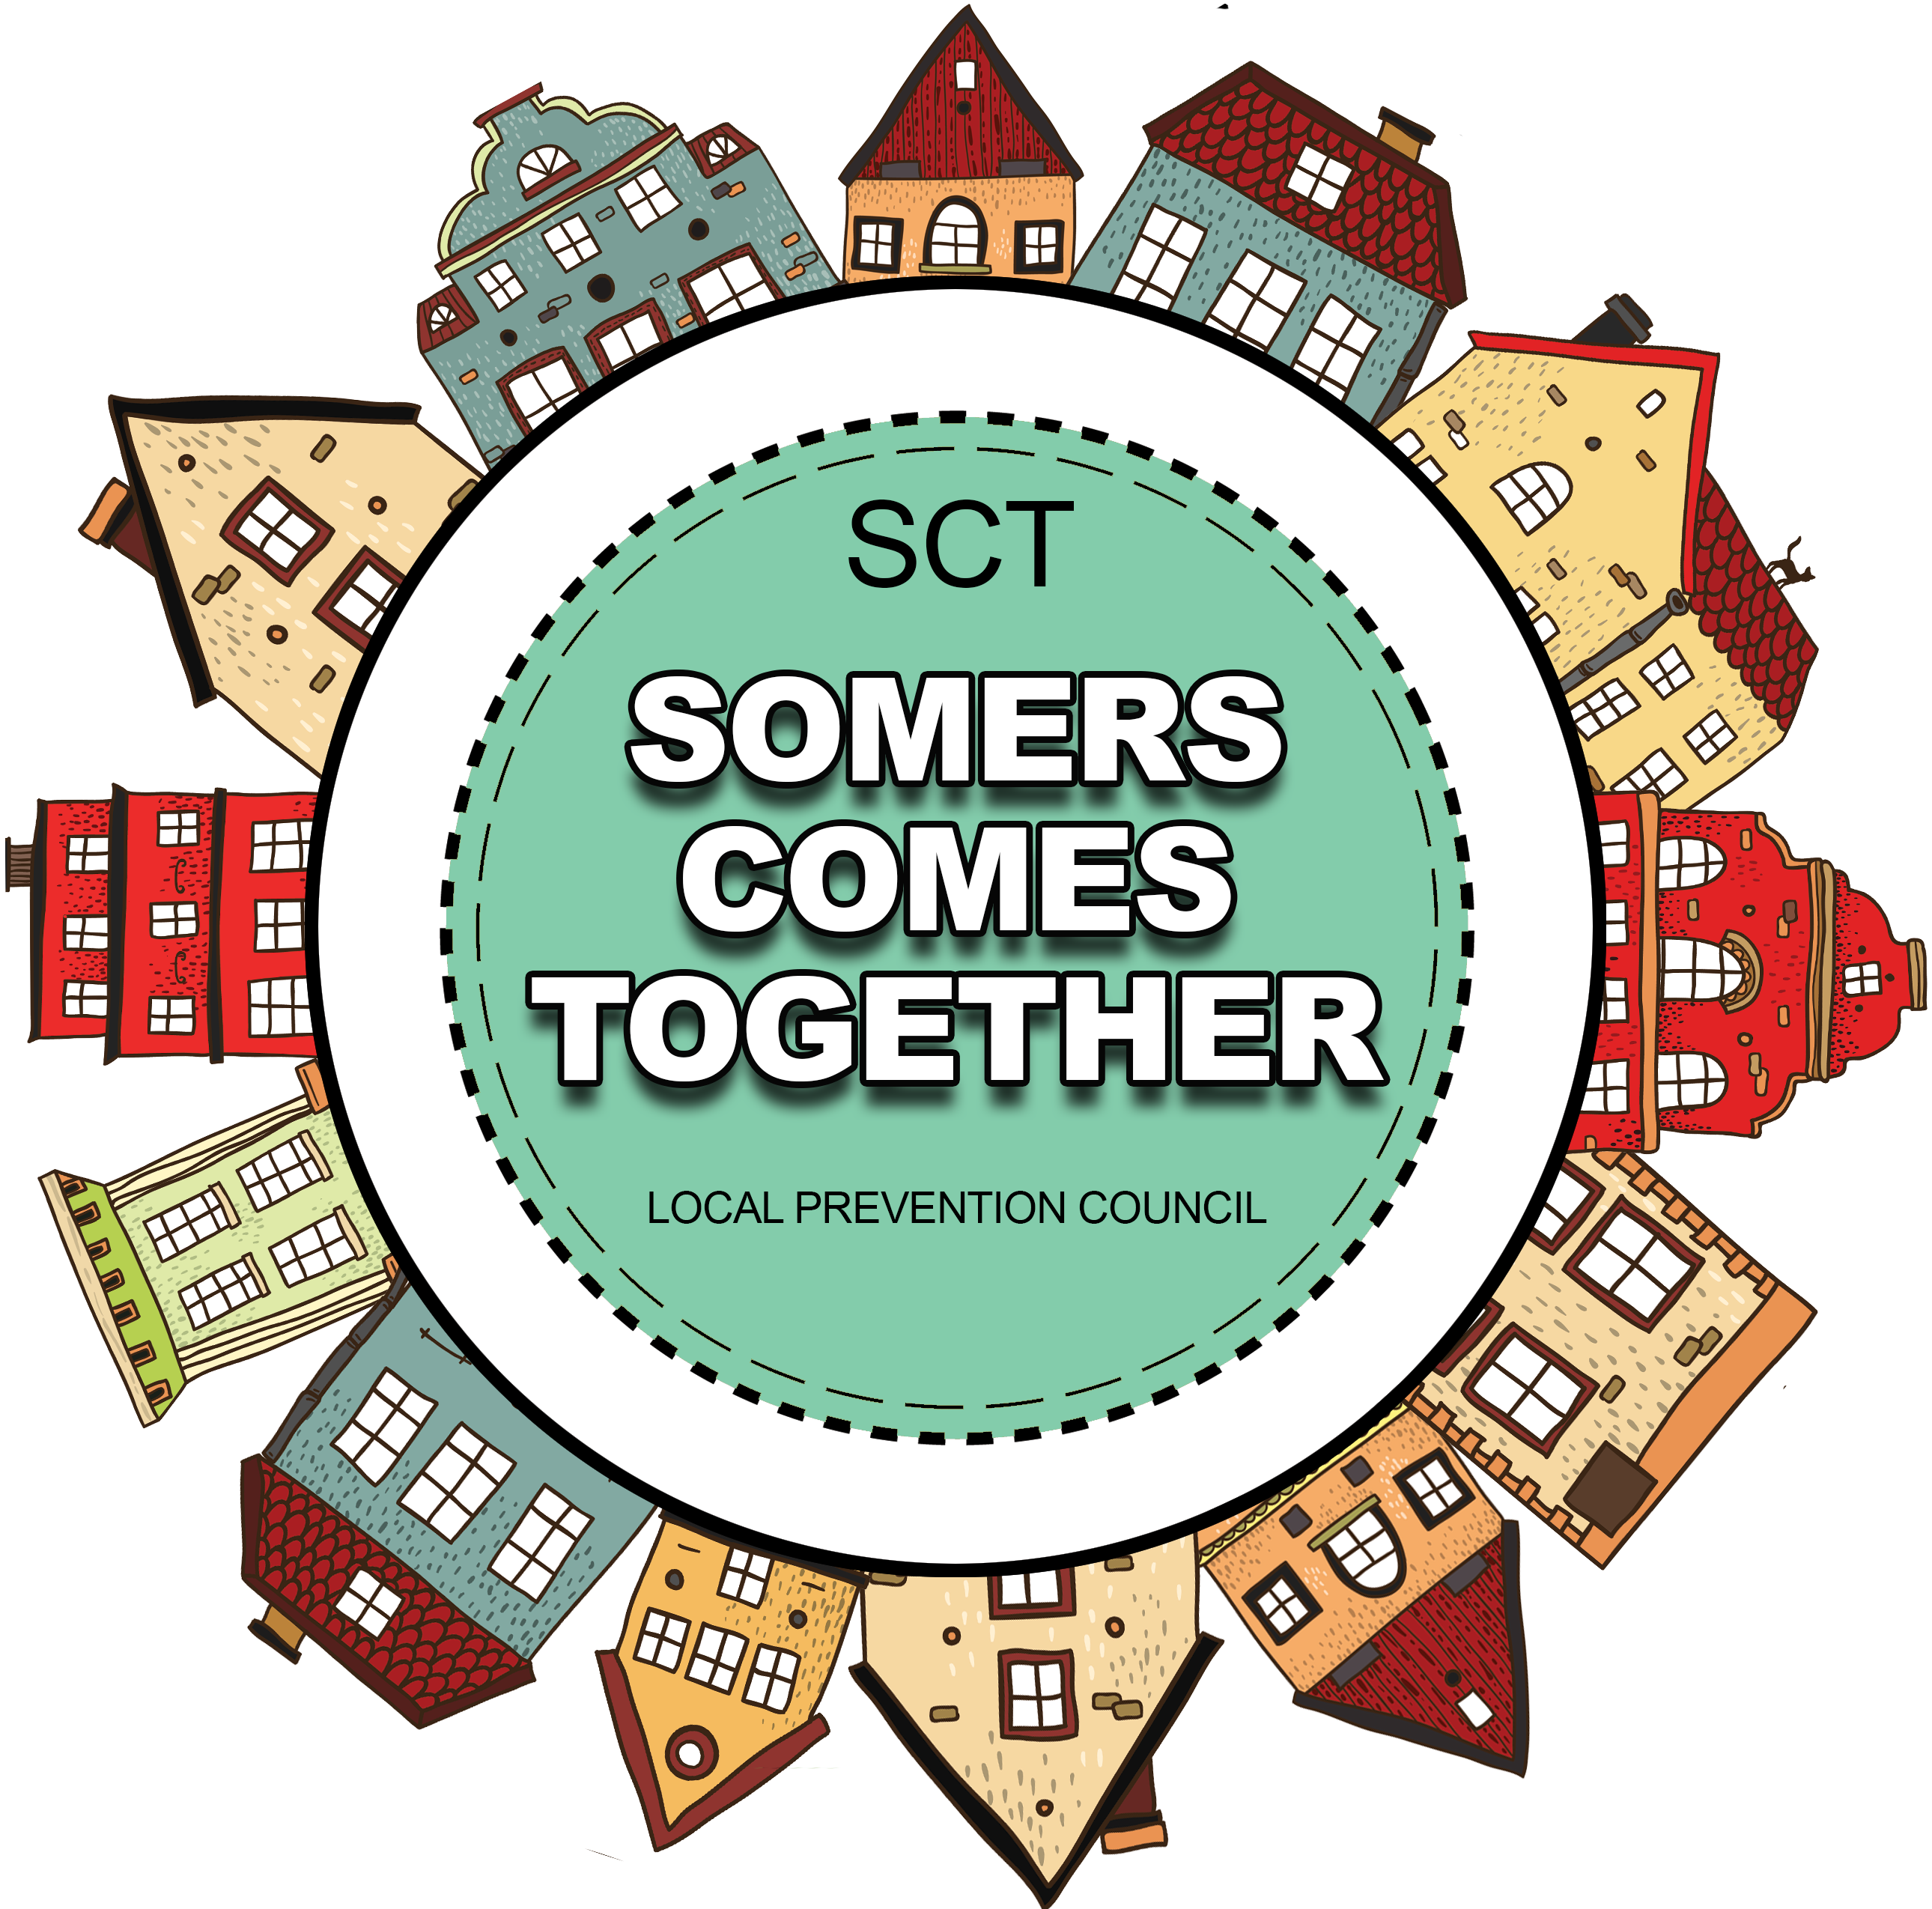 Somers Comes Together